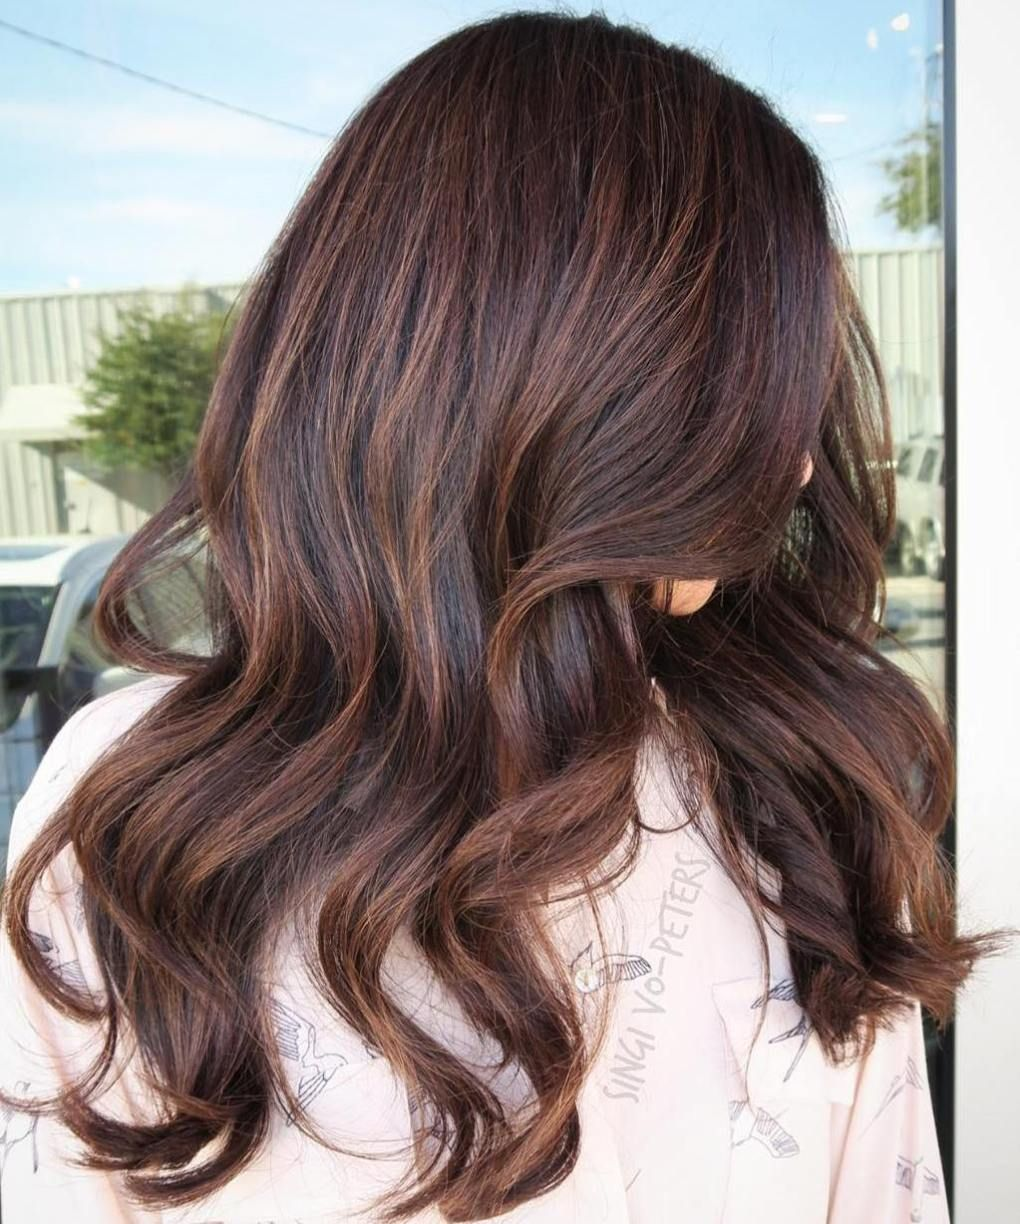 50 chocolate brown hair color ideas for brunettes subtle 50 chocolate brown hair color ideas for brunettes pmusecretfo Gallery